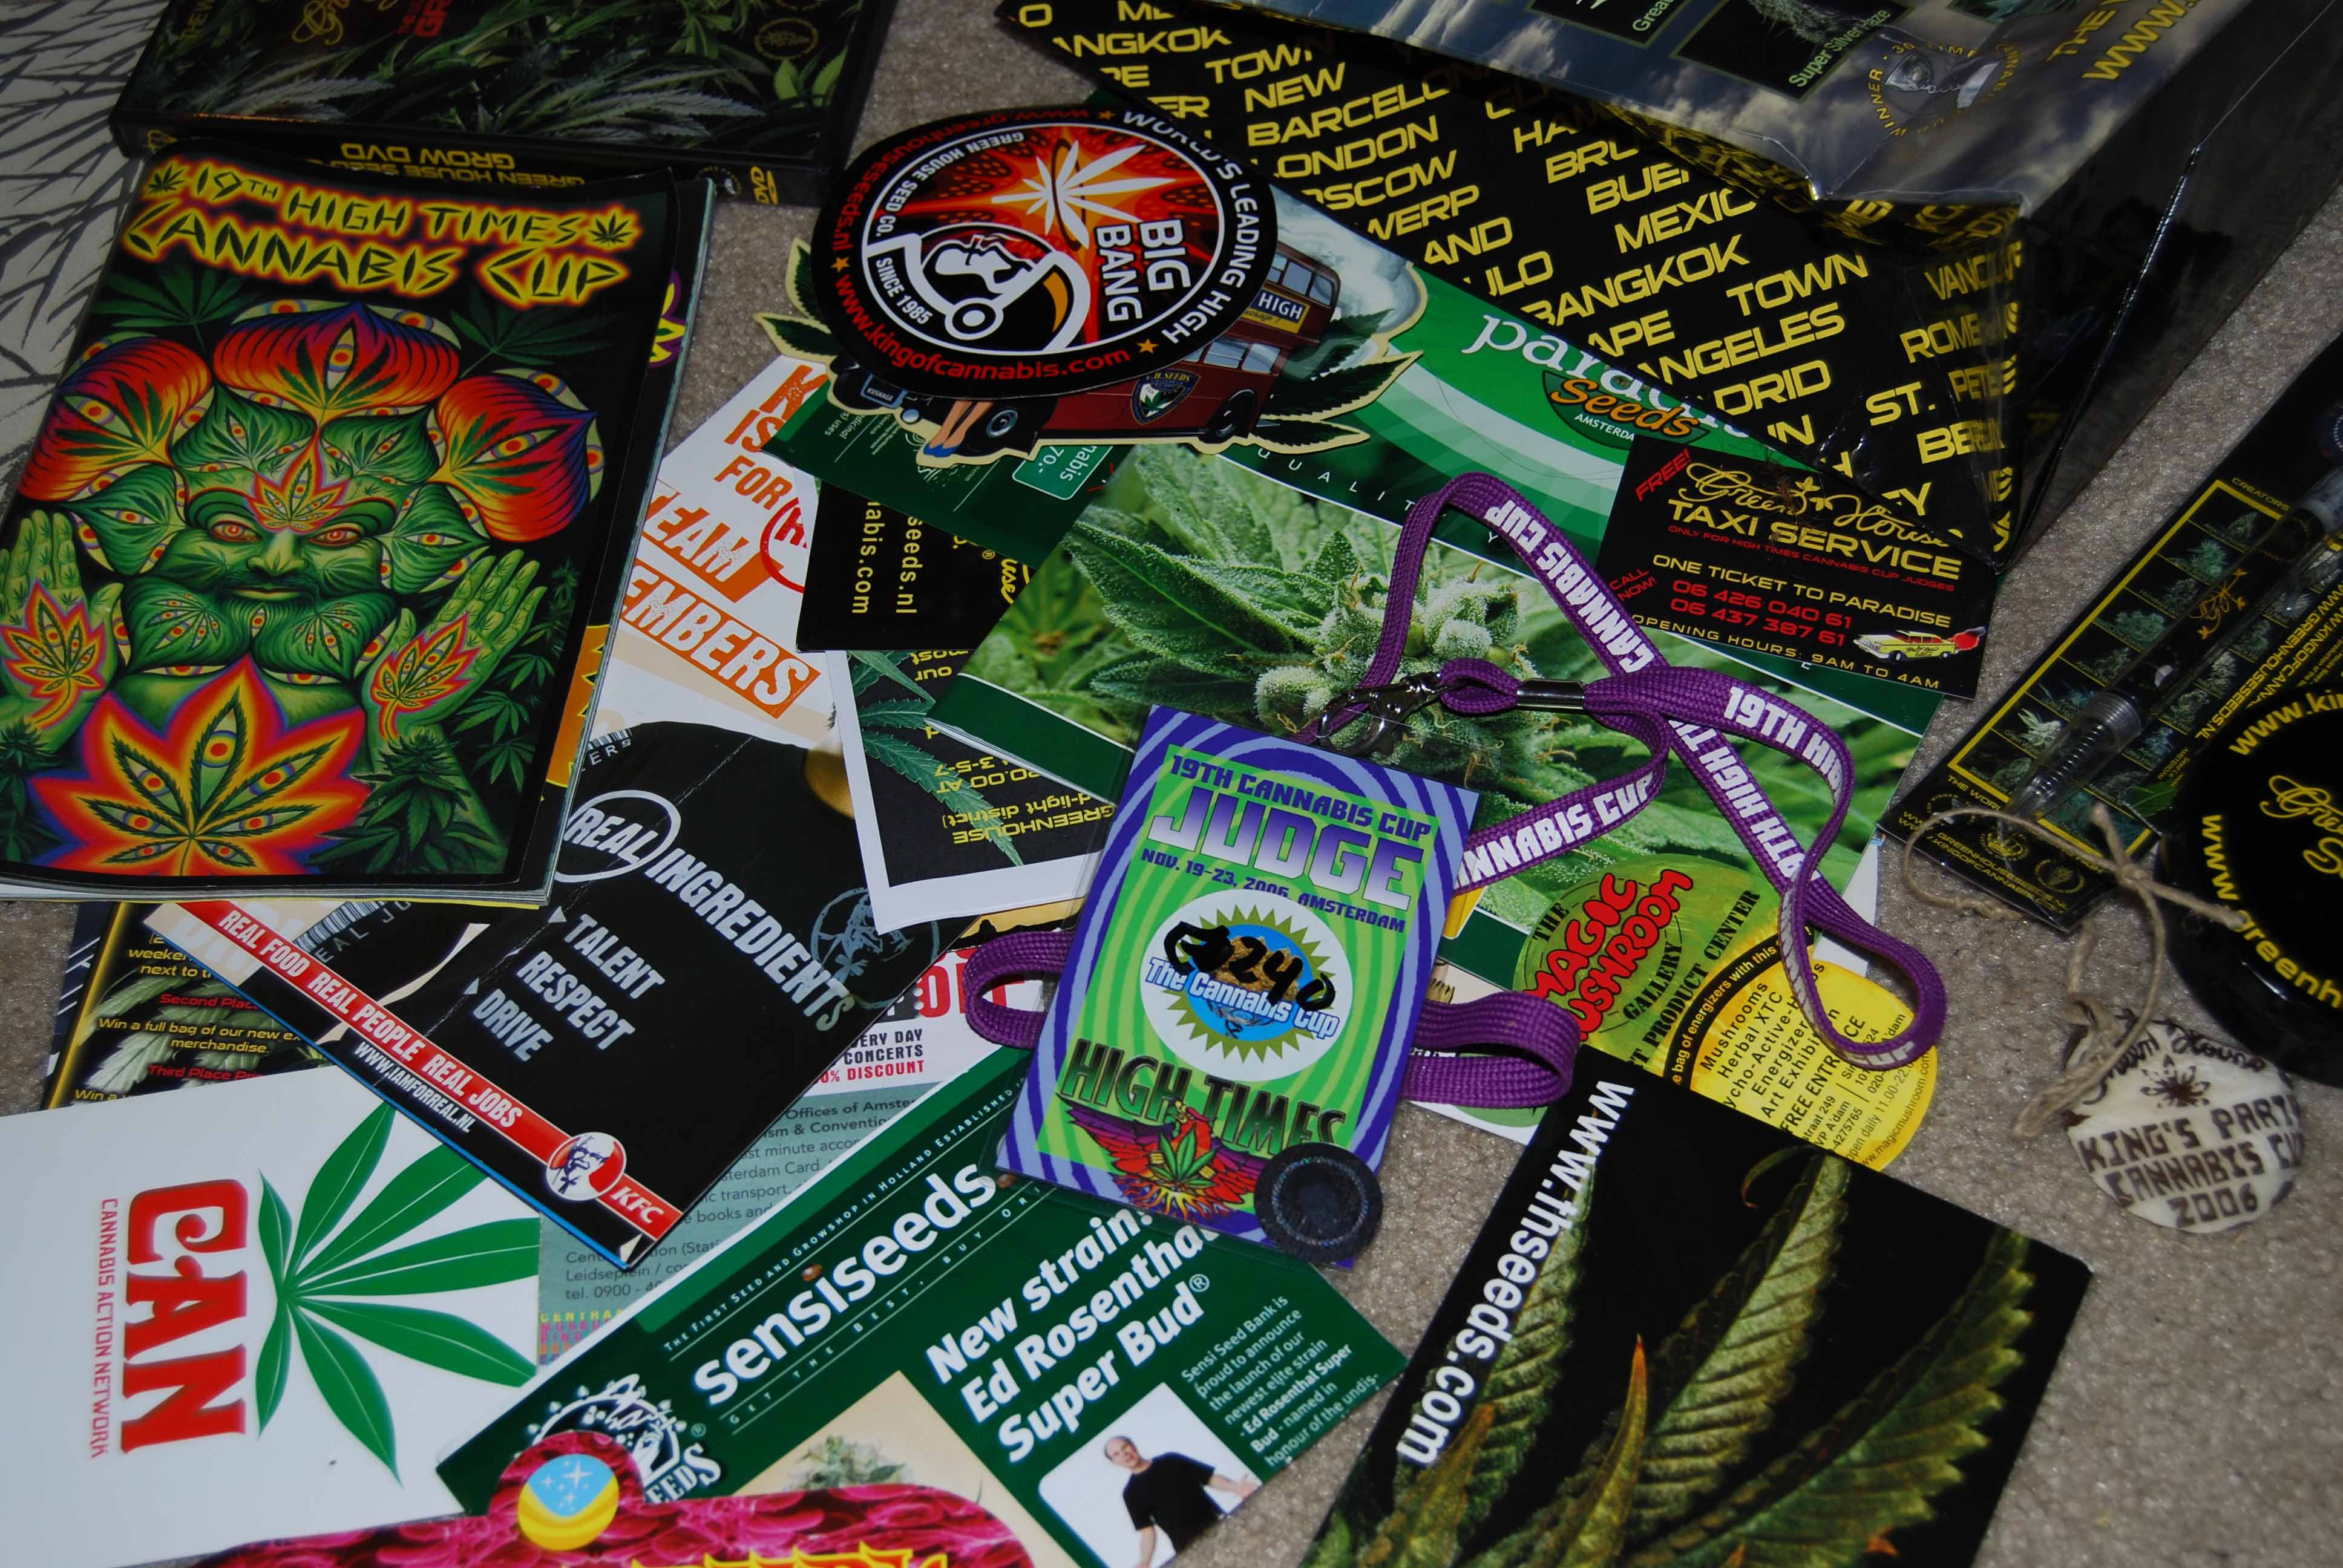 High Times cannabis cup 2014 judge pass